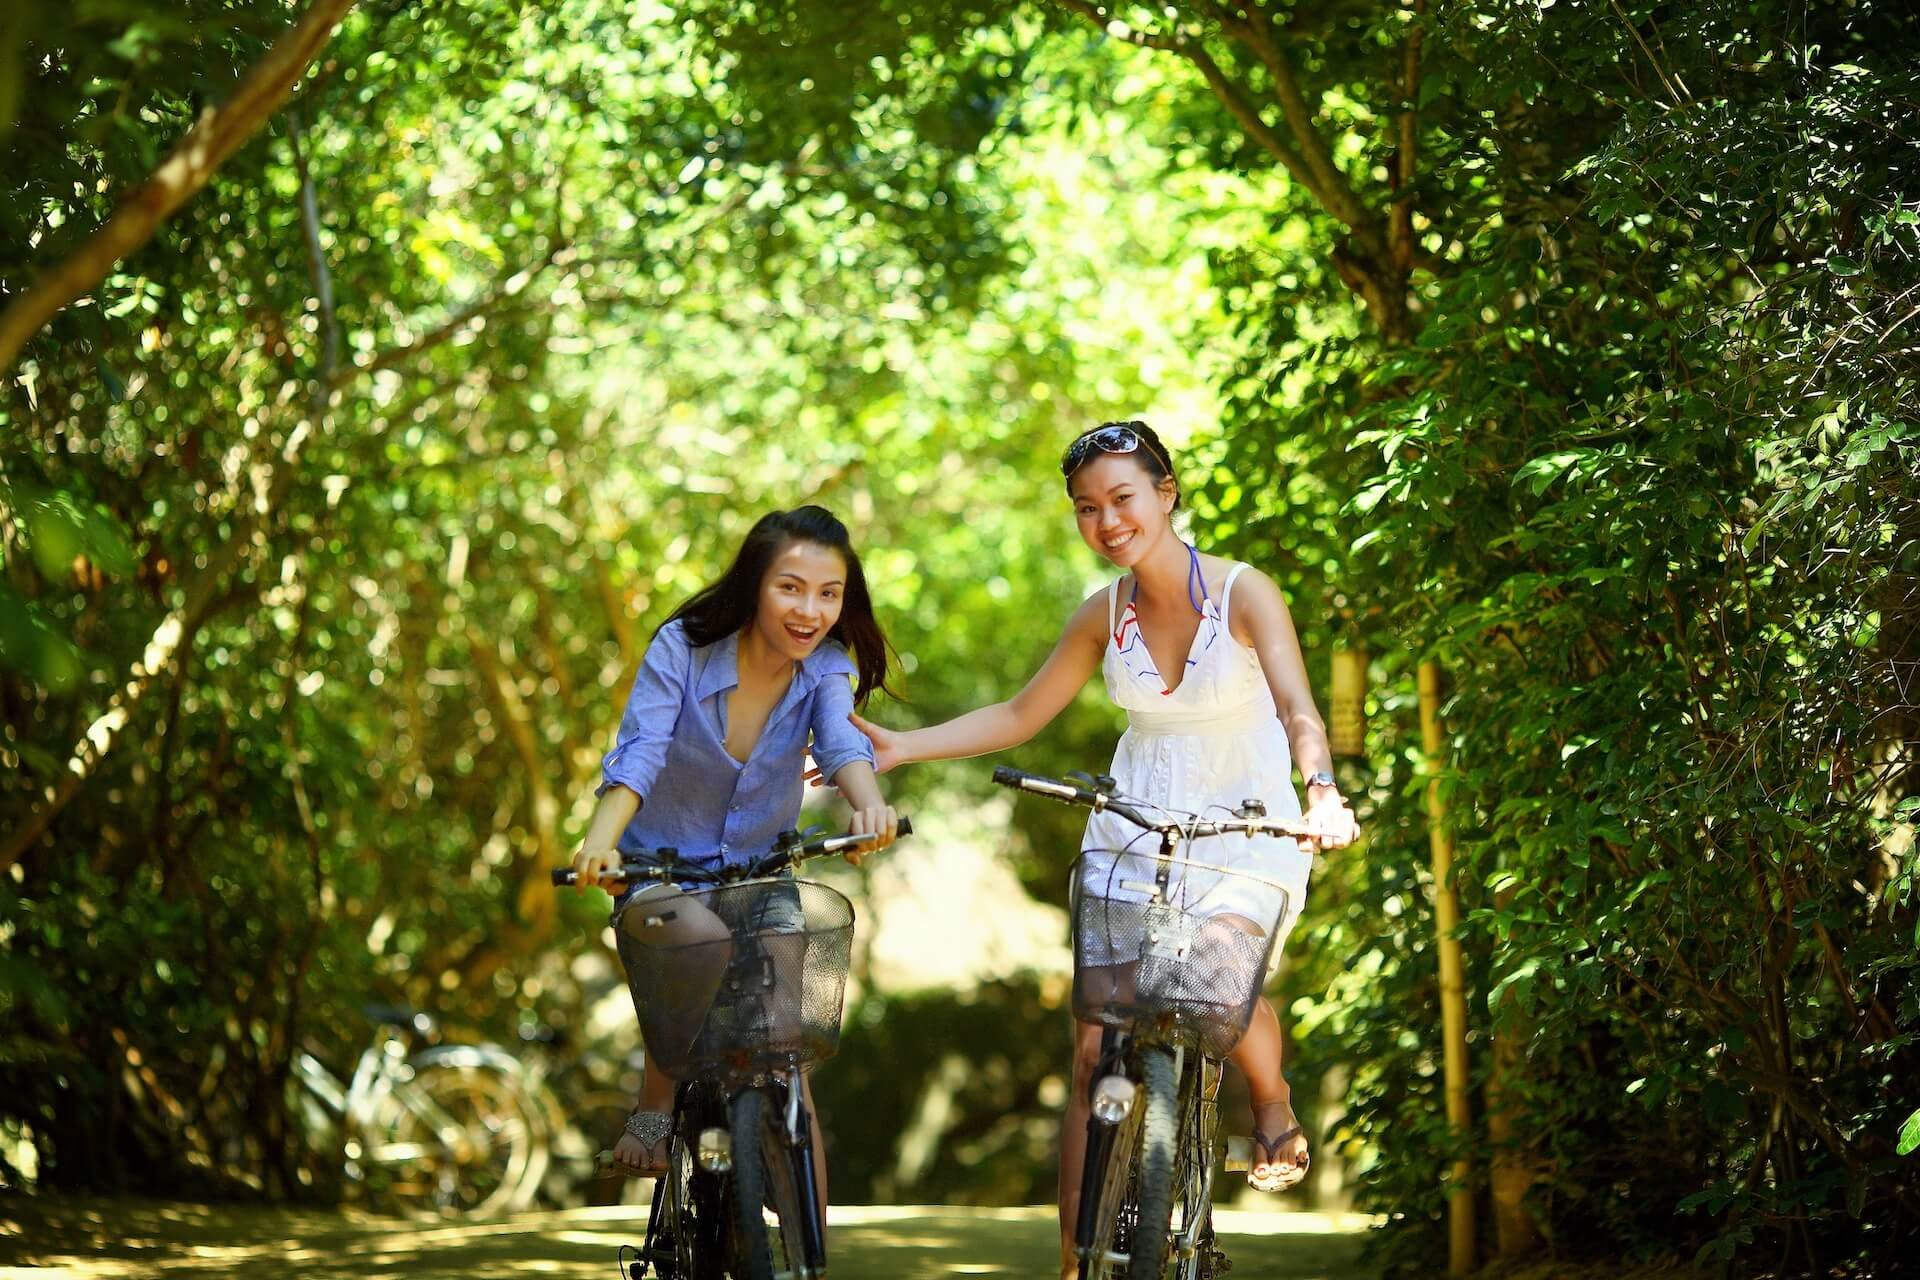 One woman in a white dress on a bike holding on to the arm of another woman in a blue button-up shirt on another bike